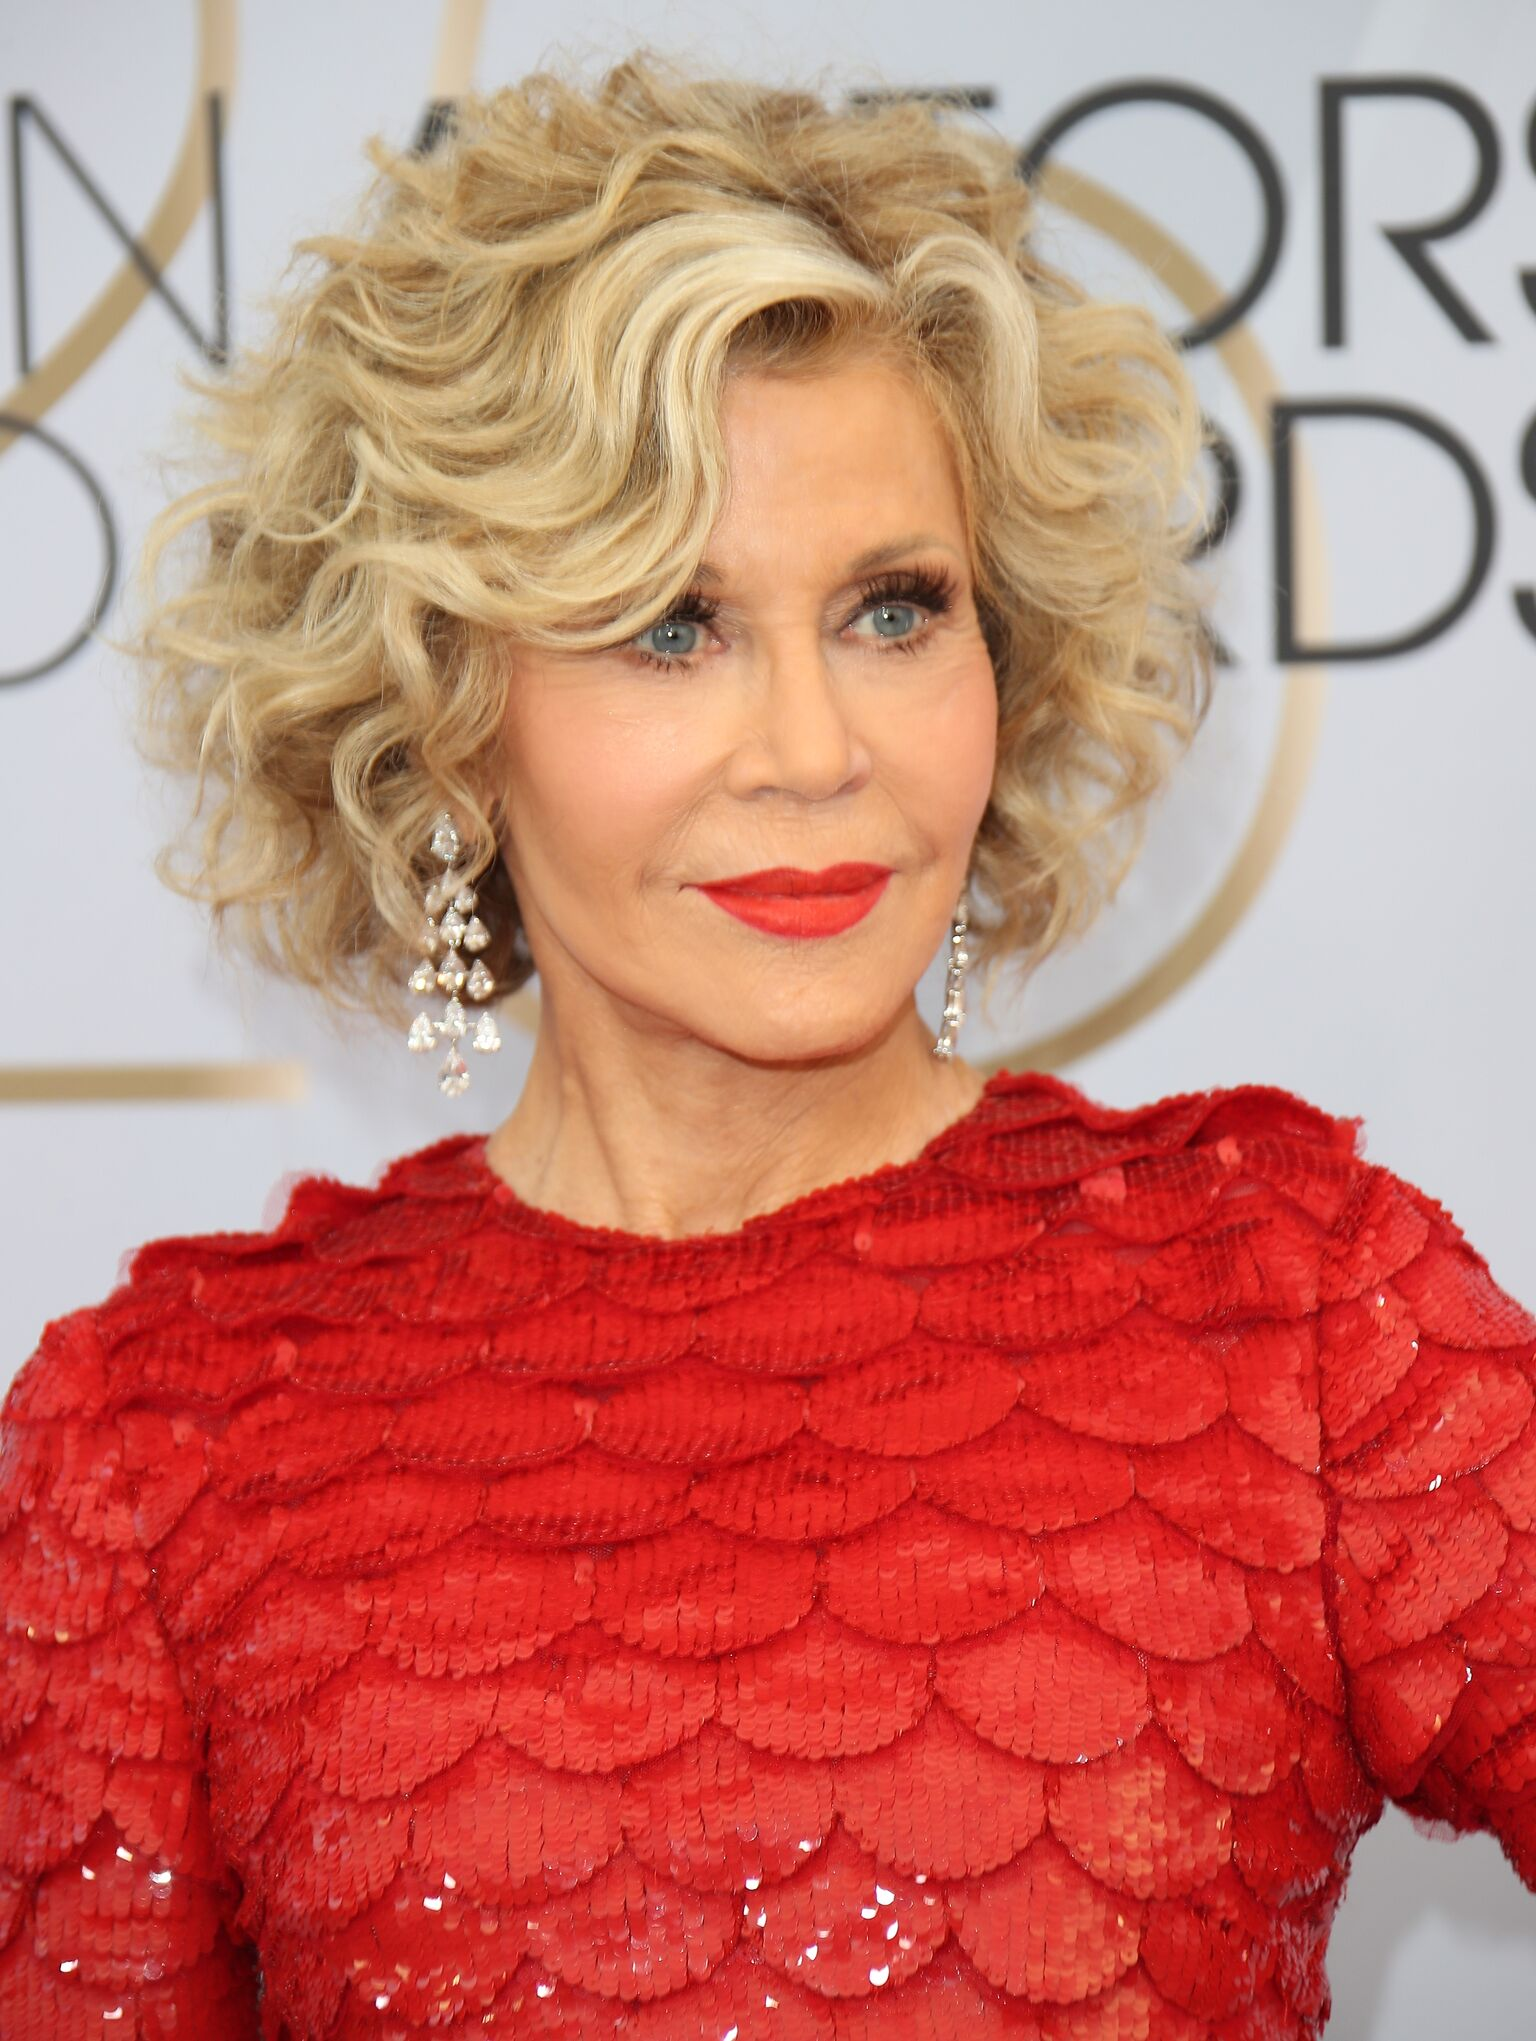 Jane Fonda attends the 25th Annual Screen Actors Guild Awards at The Shrine Auditorium  | Getty Images